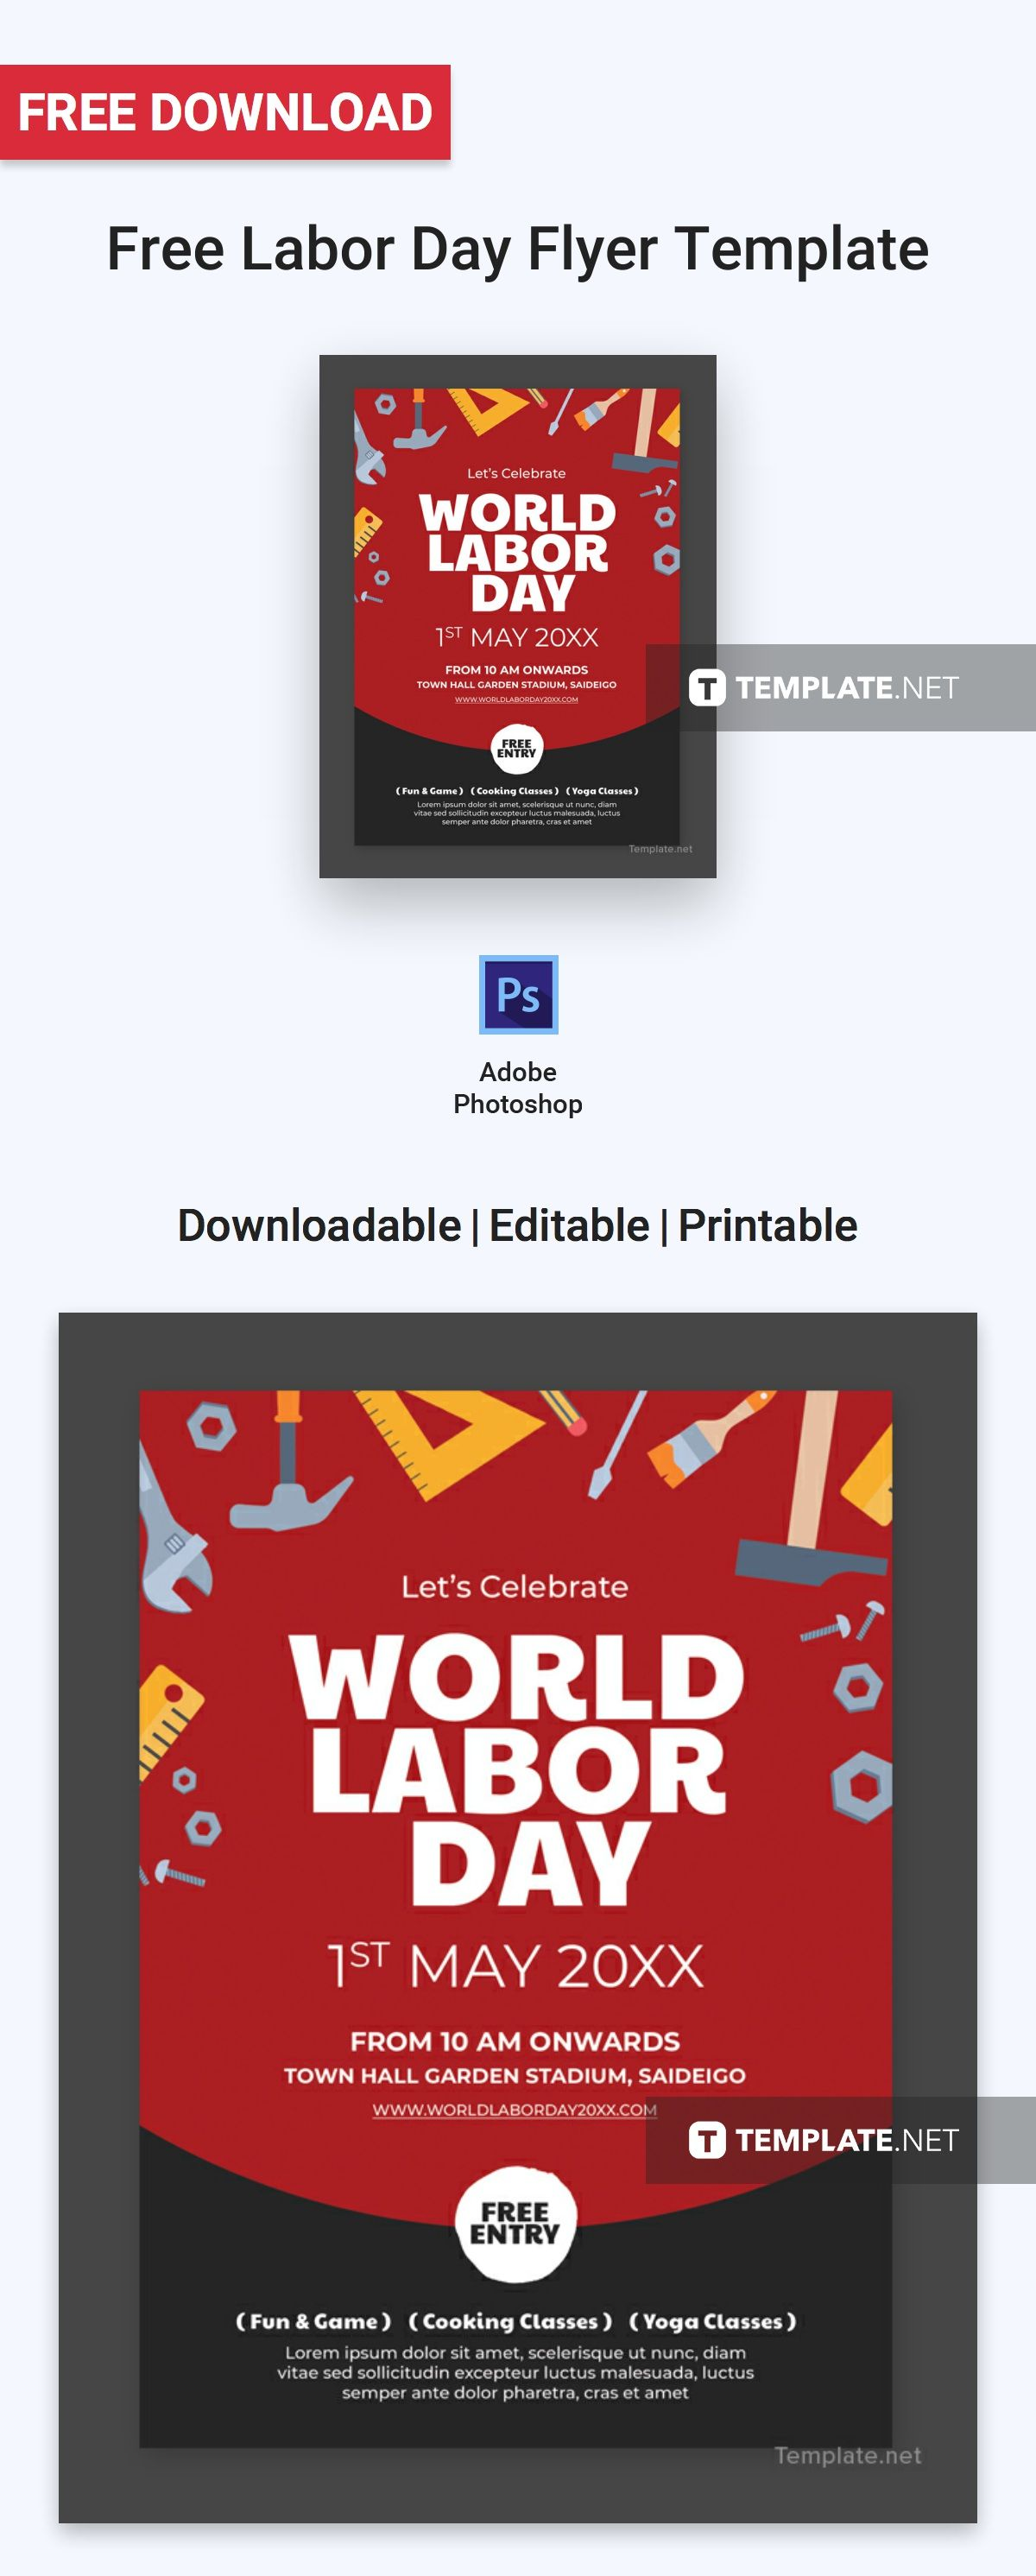 free labor day flyer flyer templates designs 2019 flyer